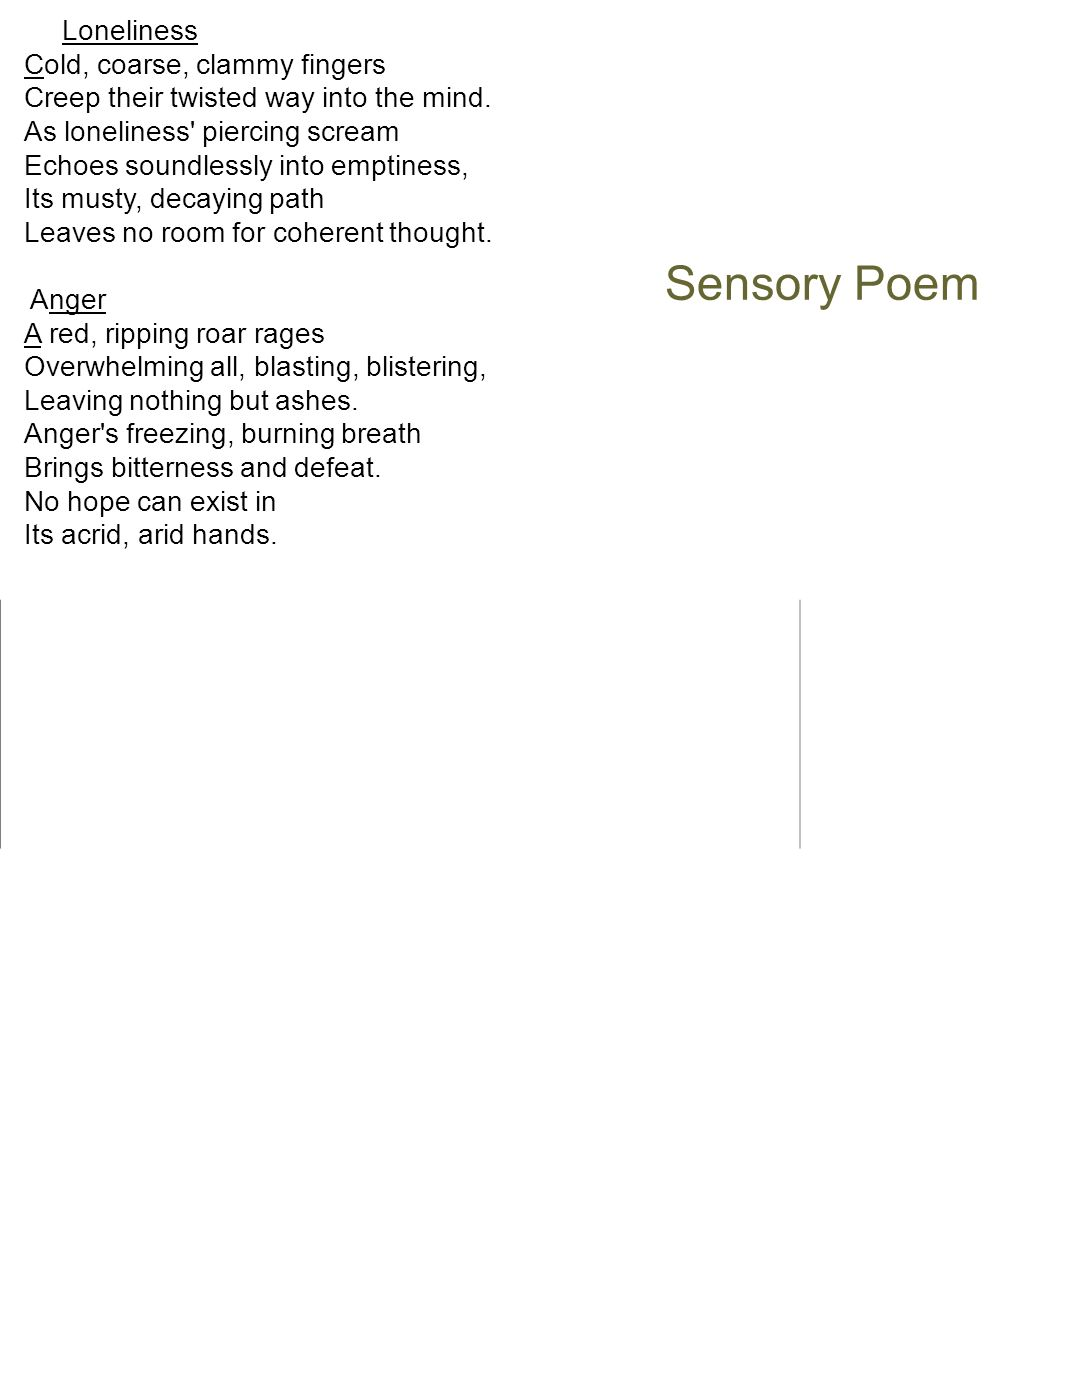 Sensory Poem Cold, coarse, clammy fingers